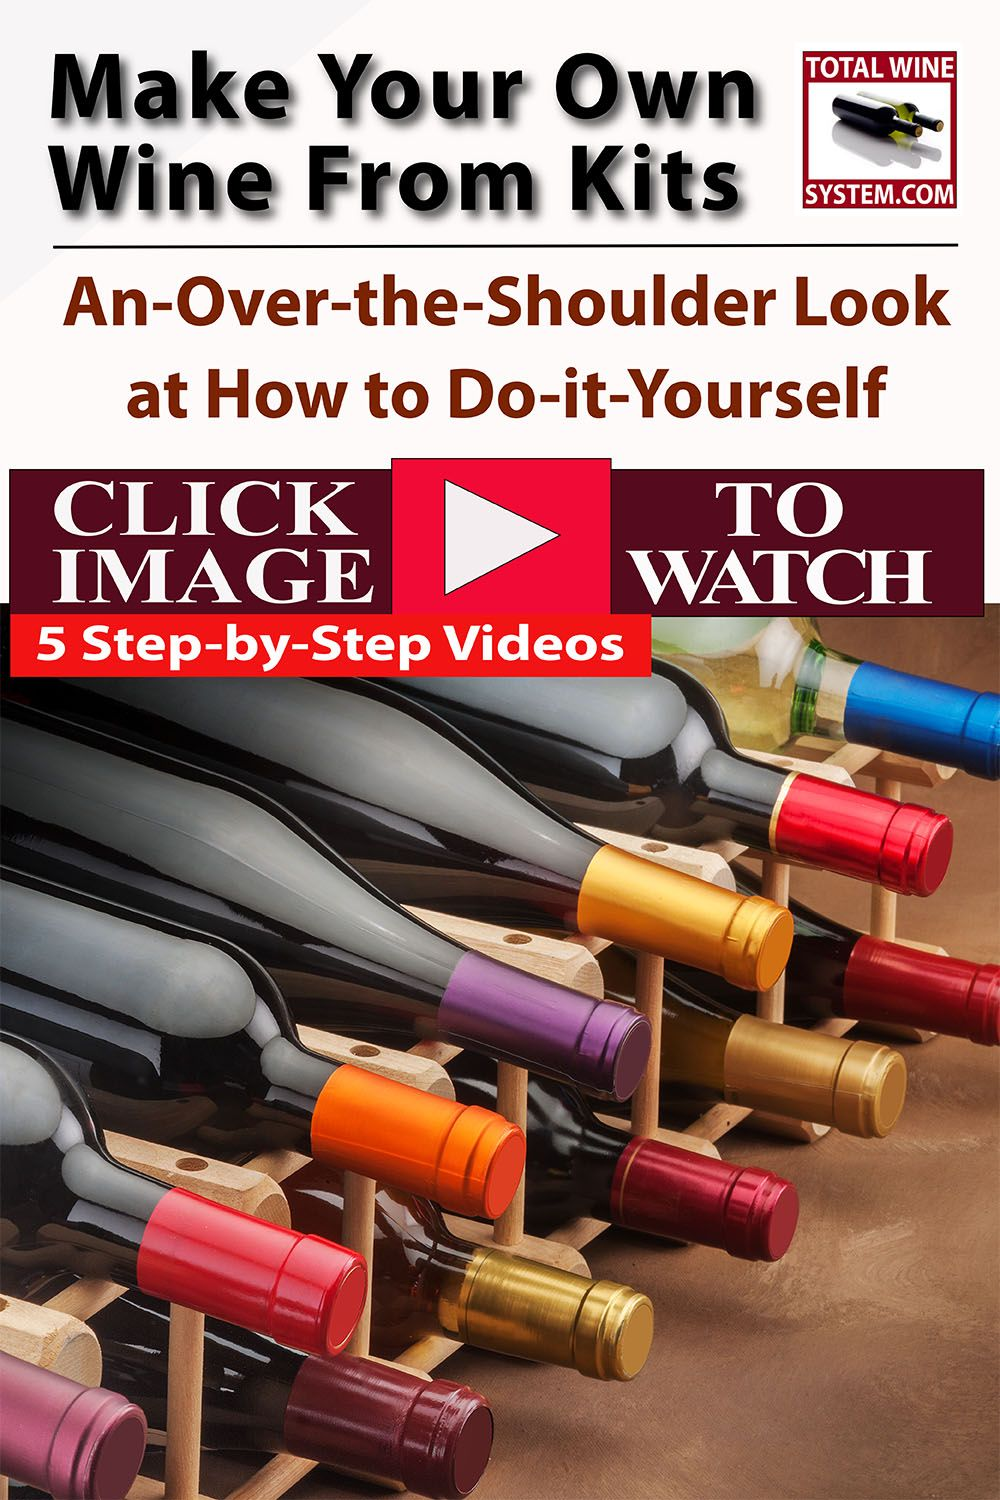 Kit Winemaking The Total Wine System Wine Kits Make Your Own Wine Homemade Wine Making